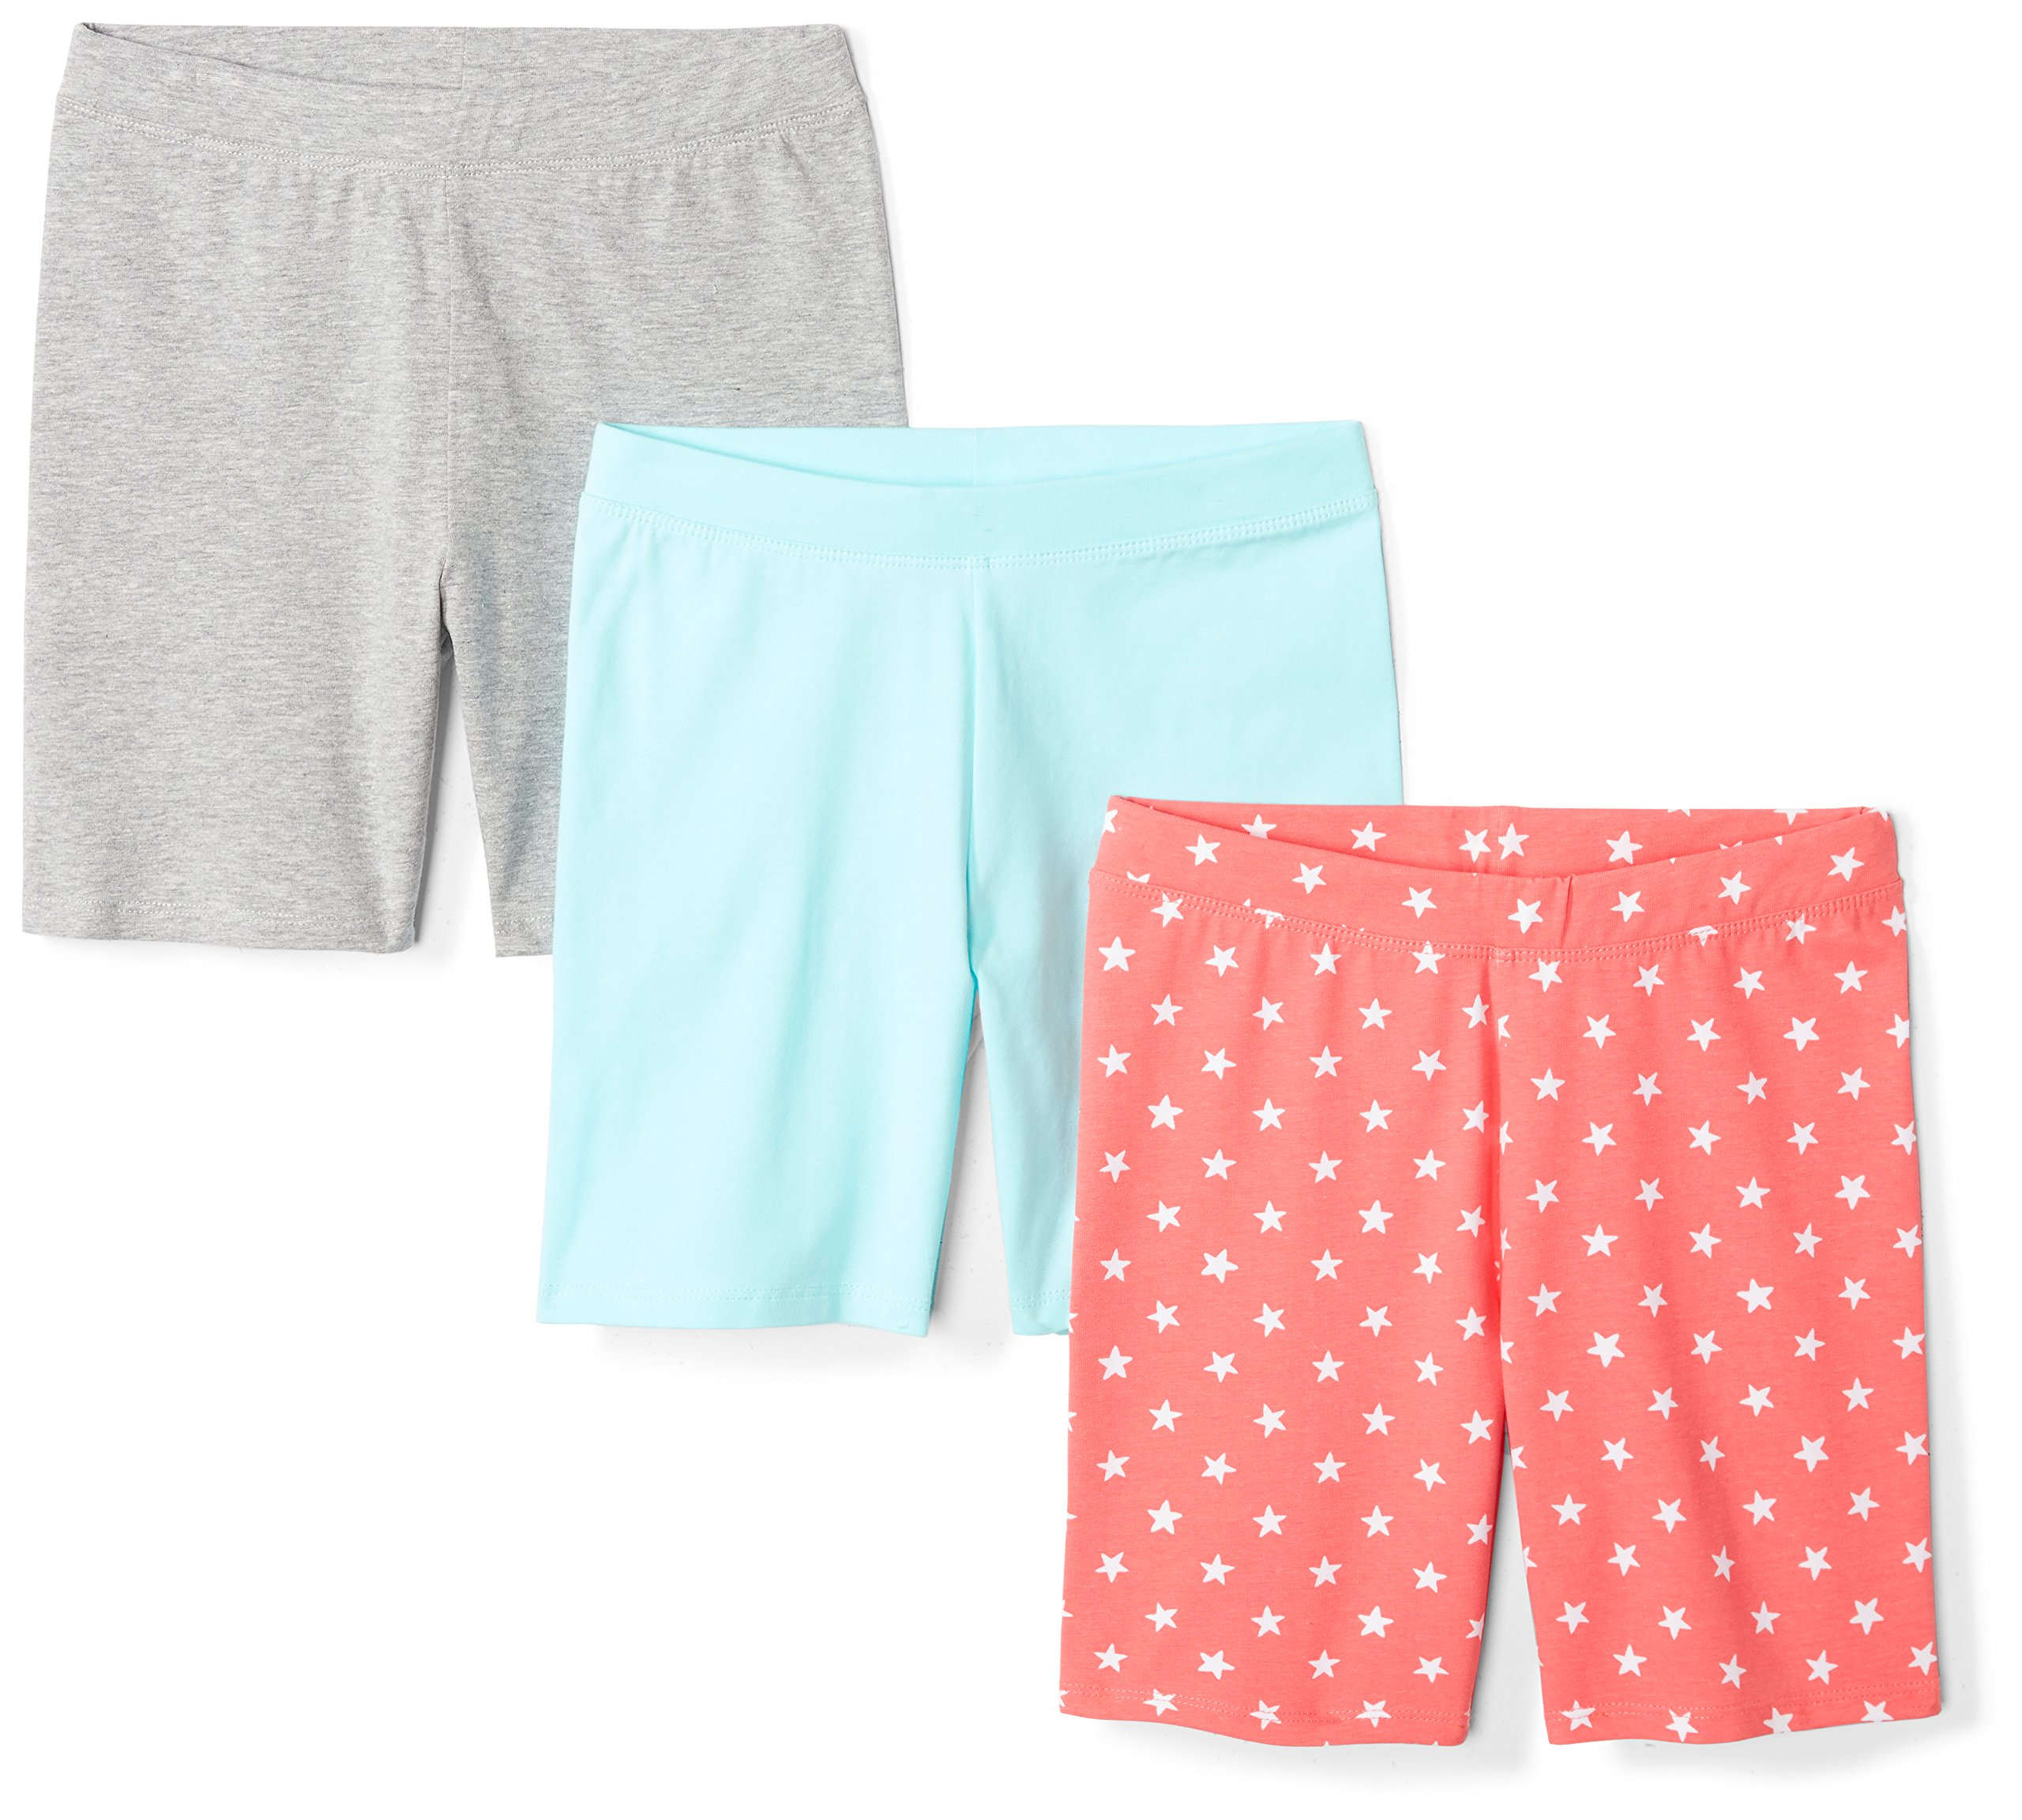 Spotted Zebra Toddler Girls' 3-Pack Bike Shorts, Coral Star, 4T